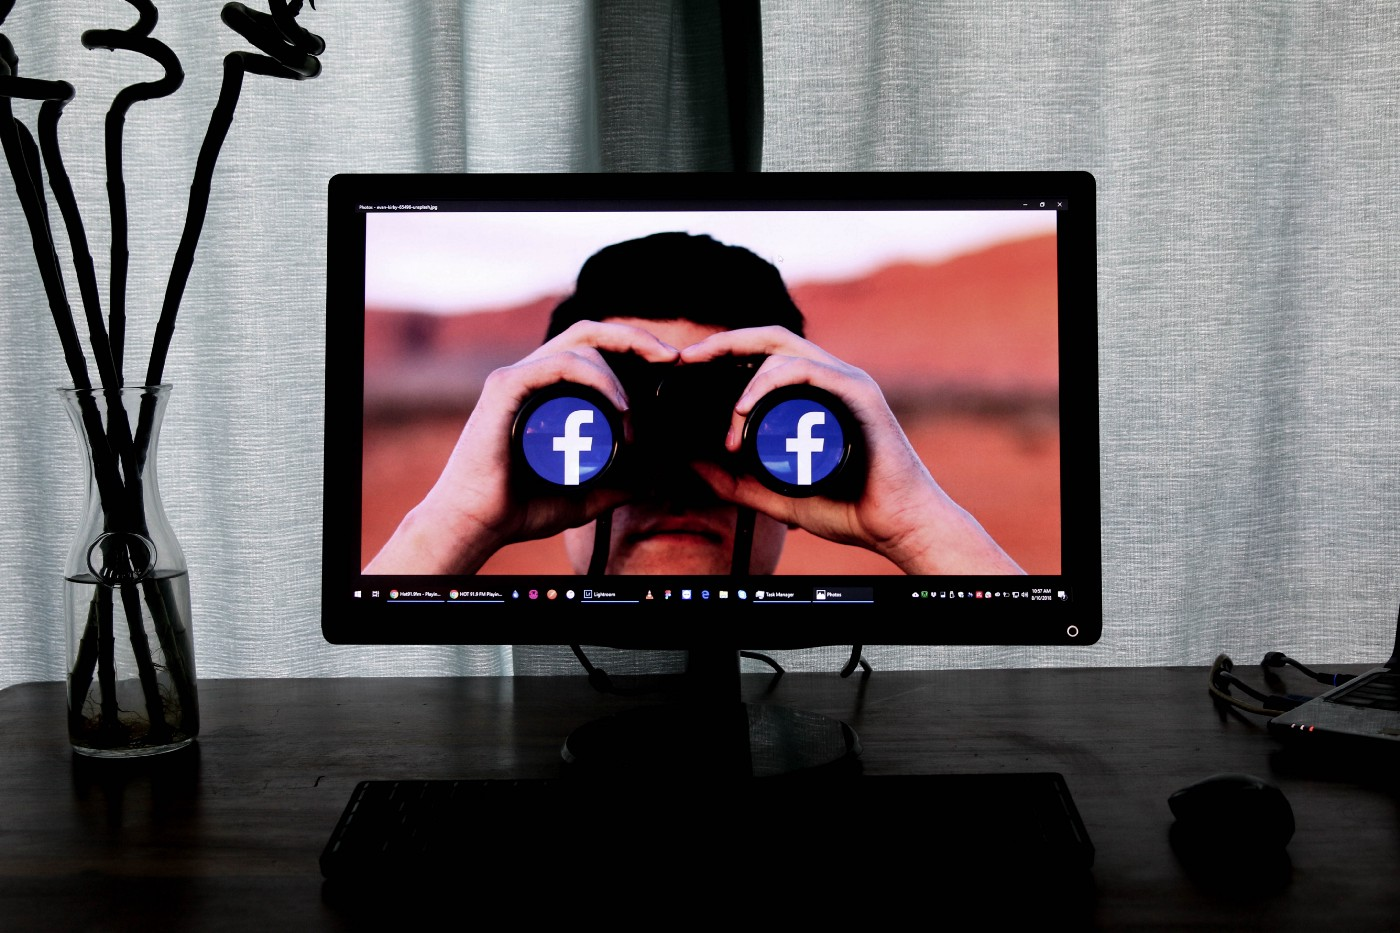 A computer monitor with the image of a person looking through binoculars with the Facebook logo in the lenses